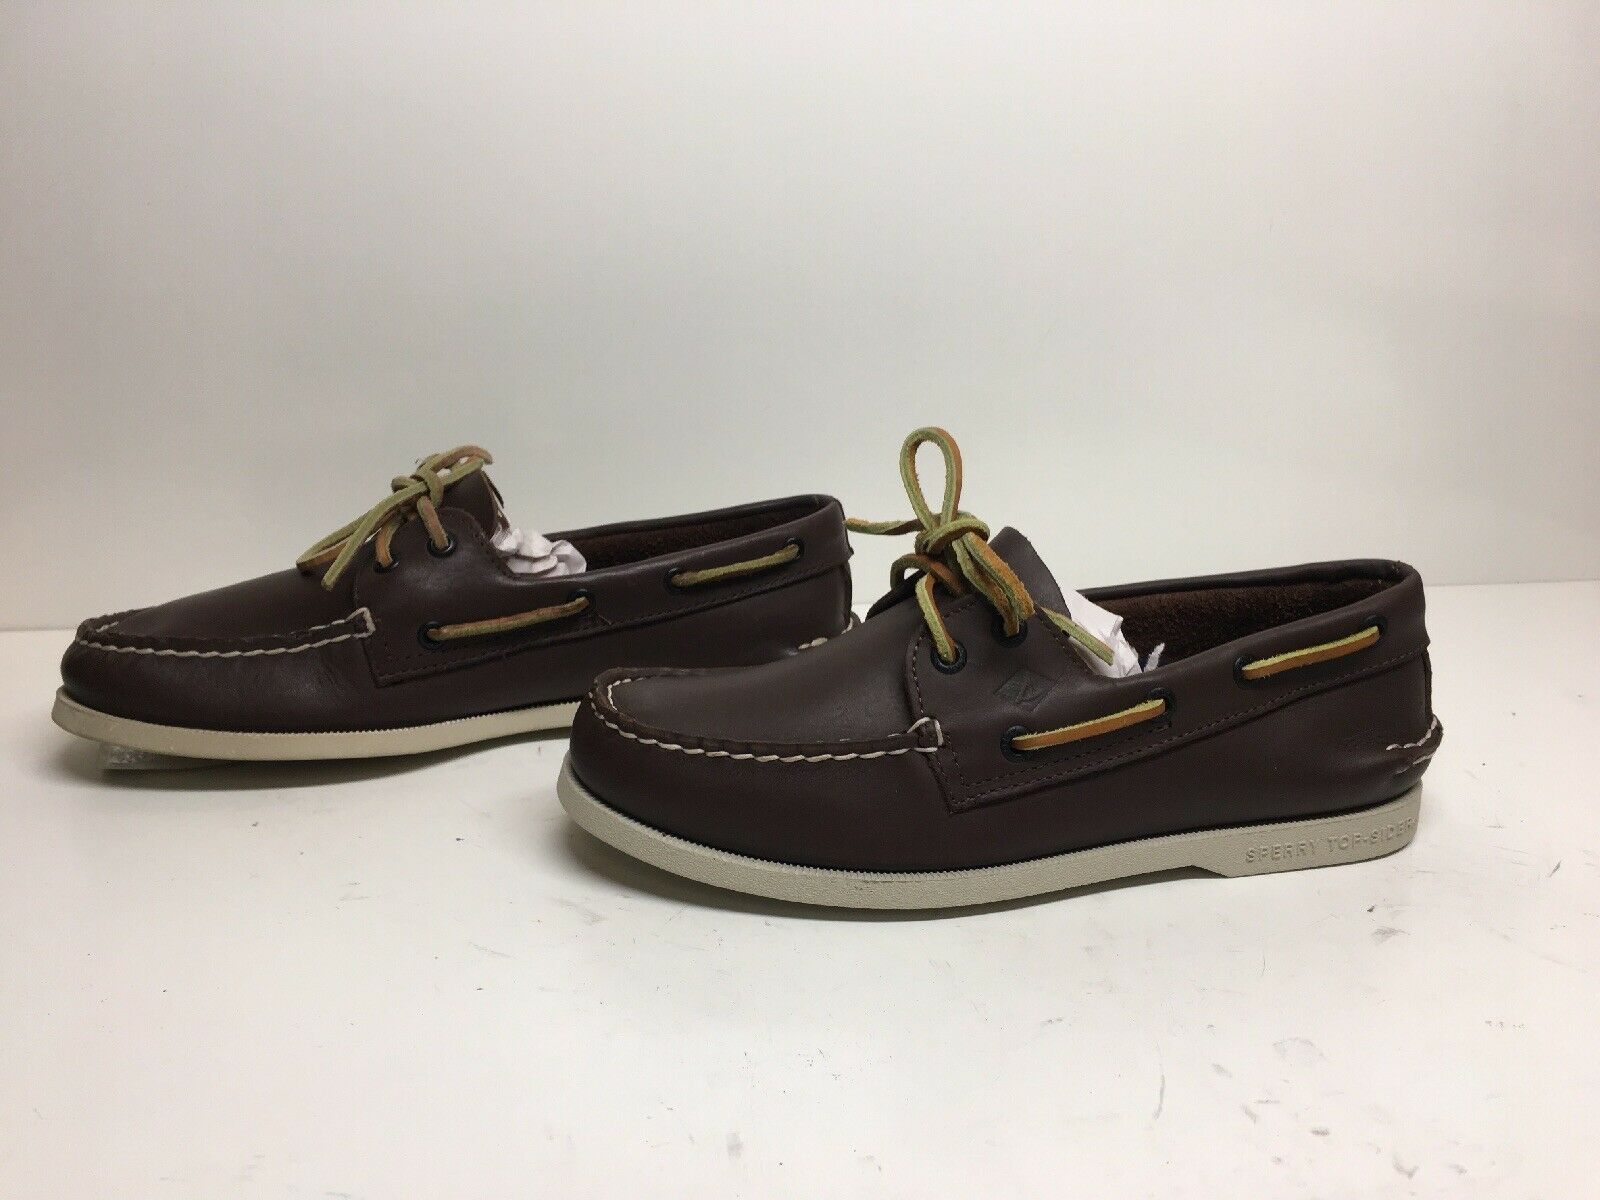 VTG MENS SPERRY TOP SIDER CASUAL BROWN SHOE SIZE 7 M DEFECTS